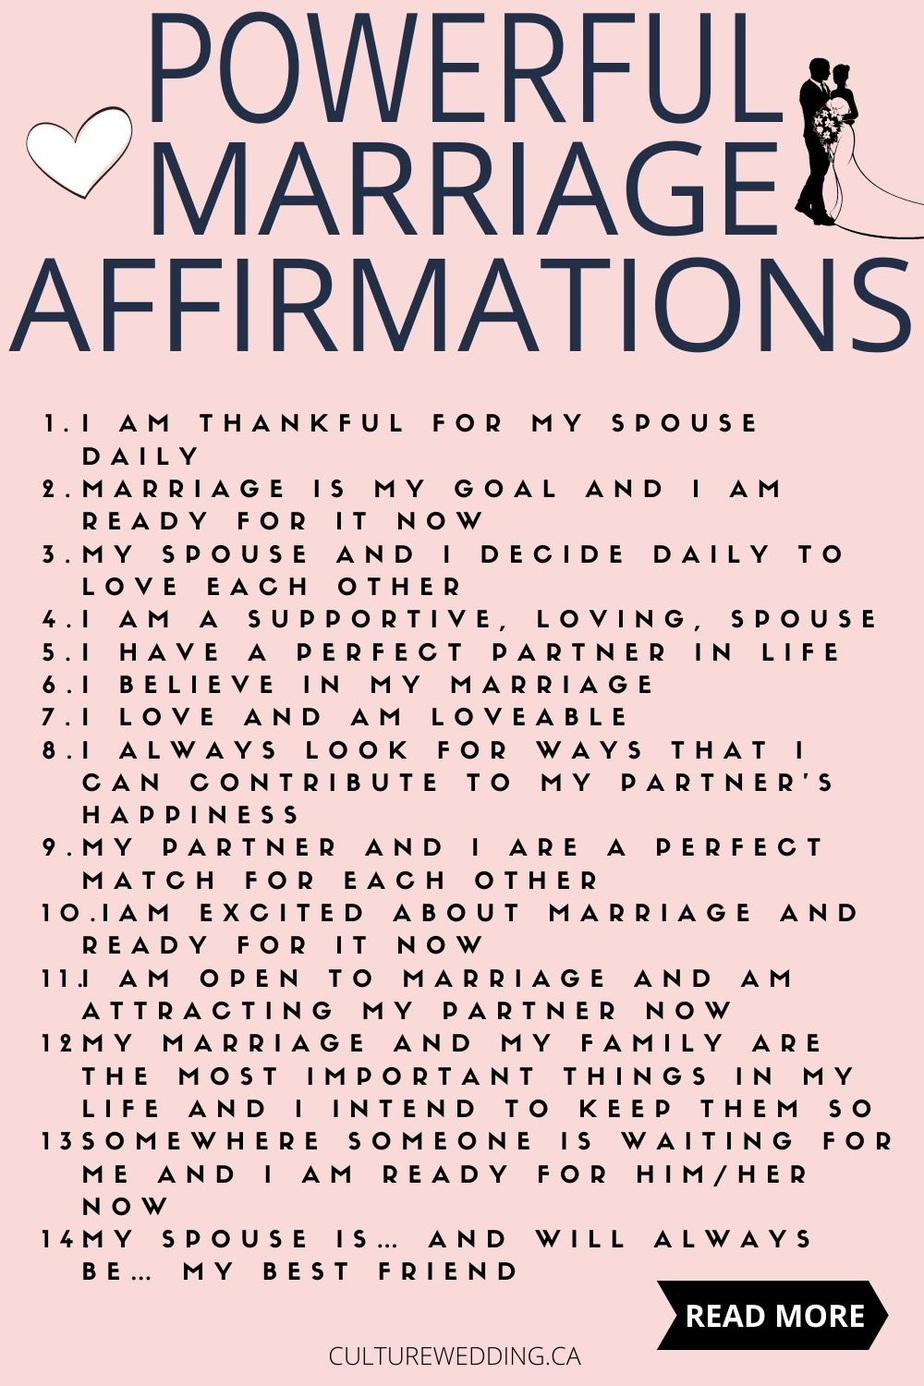 Affirmations for love and marriage! Are you looking for affirmations for getting married? Here are 25 Positive Marriage Affirmations — Culture Wedding! If you are looking for your spouse to propose, or you are looking for a spouse to marry or if you have marriage troubles, repeat these to yourself to inspire you to work on your marriage. Help yourself by working on your mindset so you can have a healthy approach to get a healthy and happy marriage.